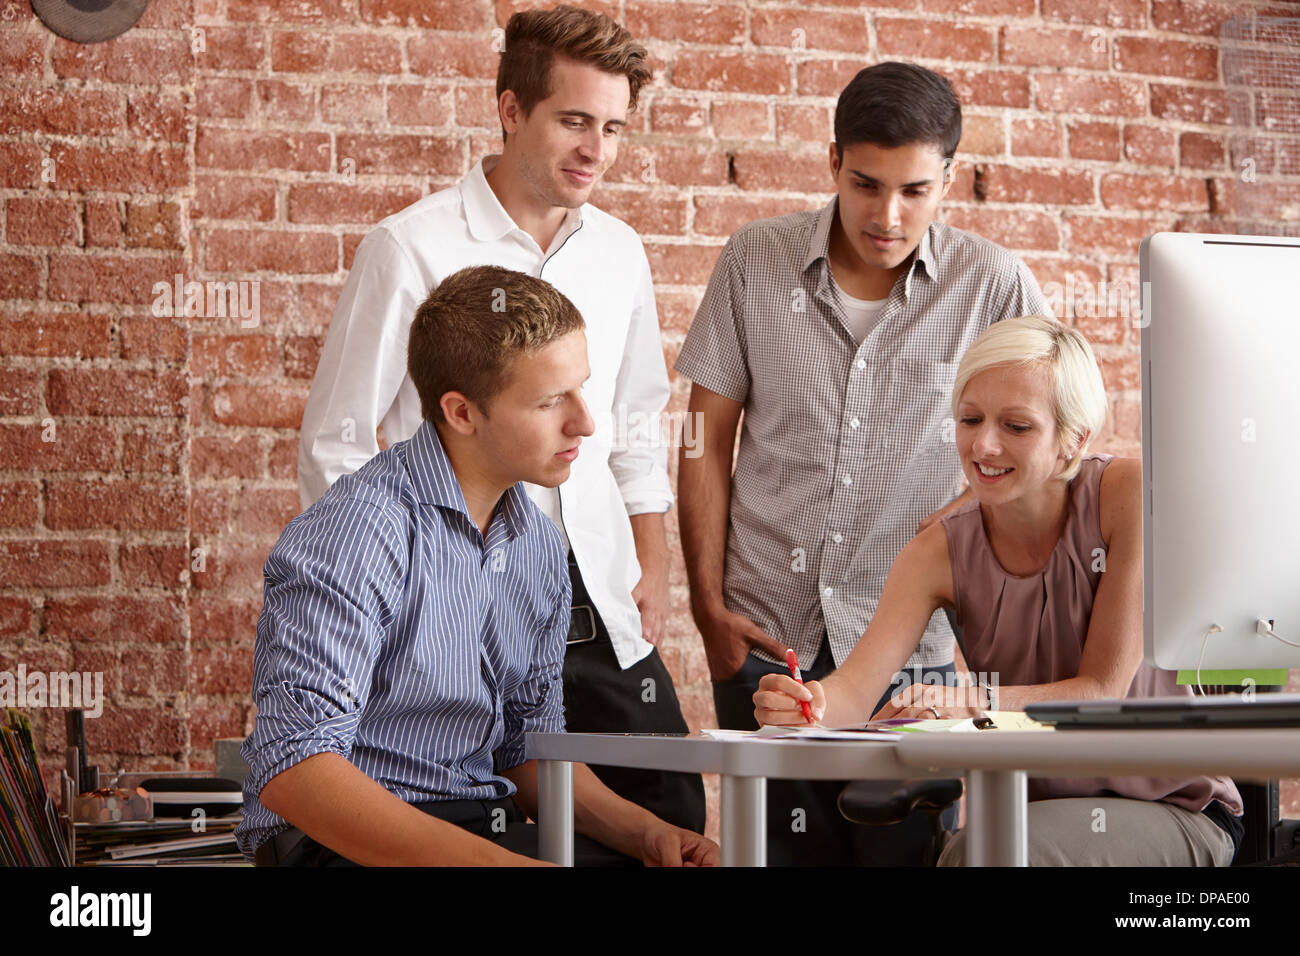 Colleagues in meeting - Stock Image